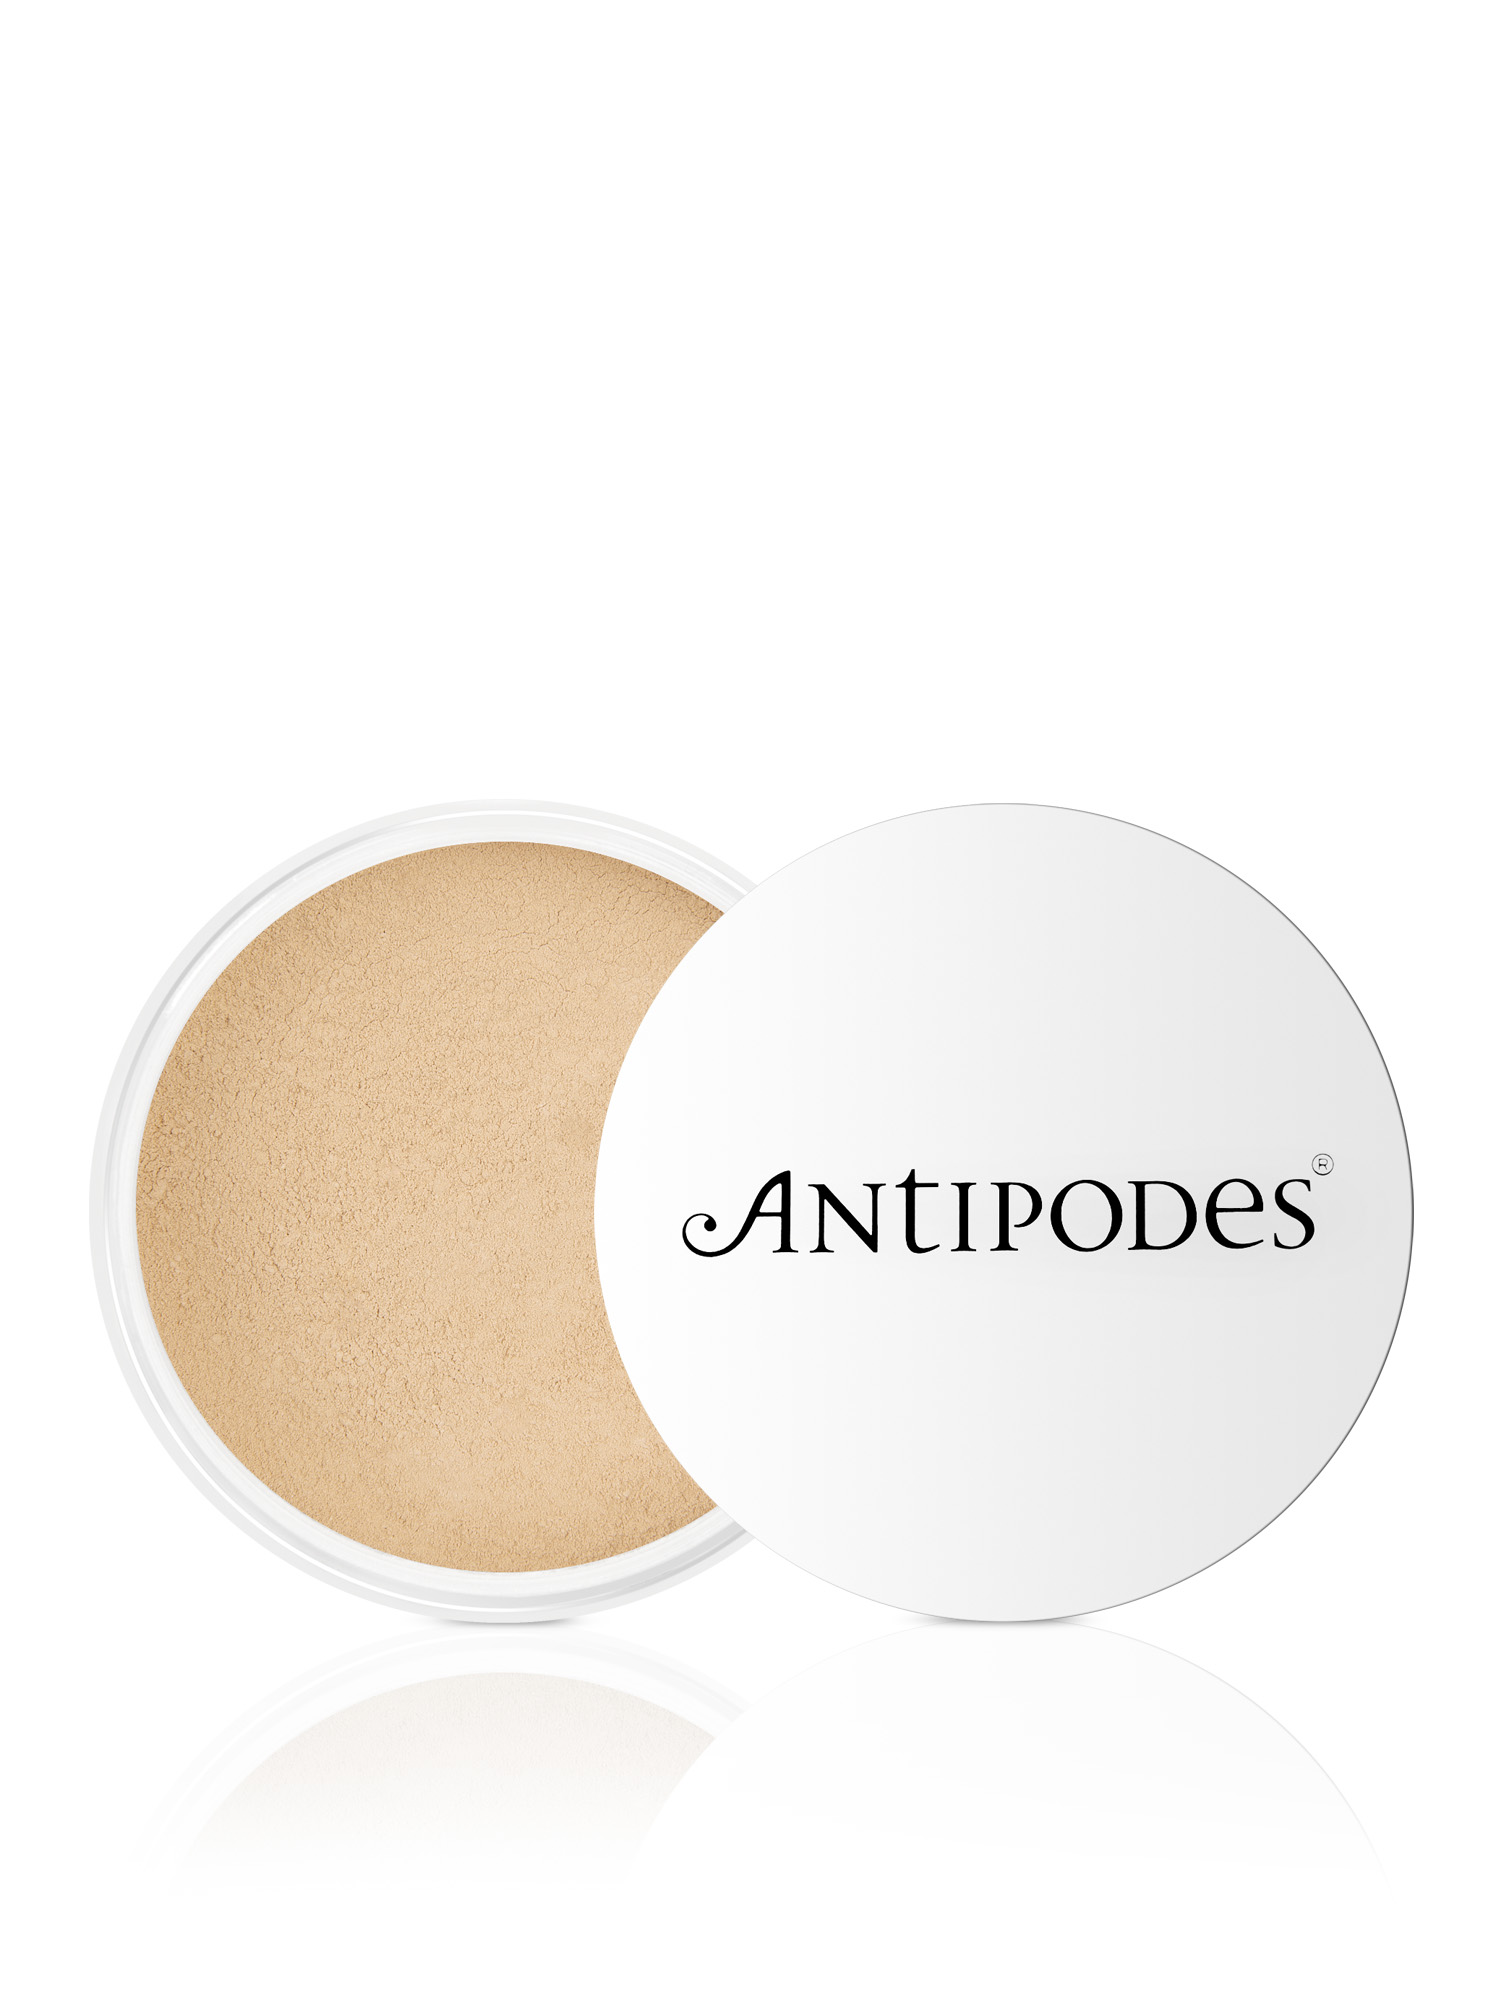 Antipodes Performance Plus Mineral Foundation with SPF 15 - Light Yellow (02)